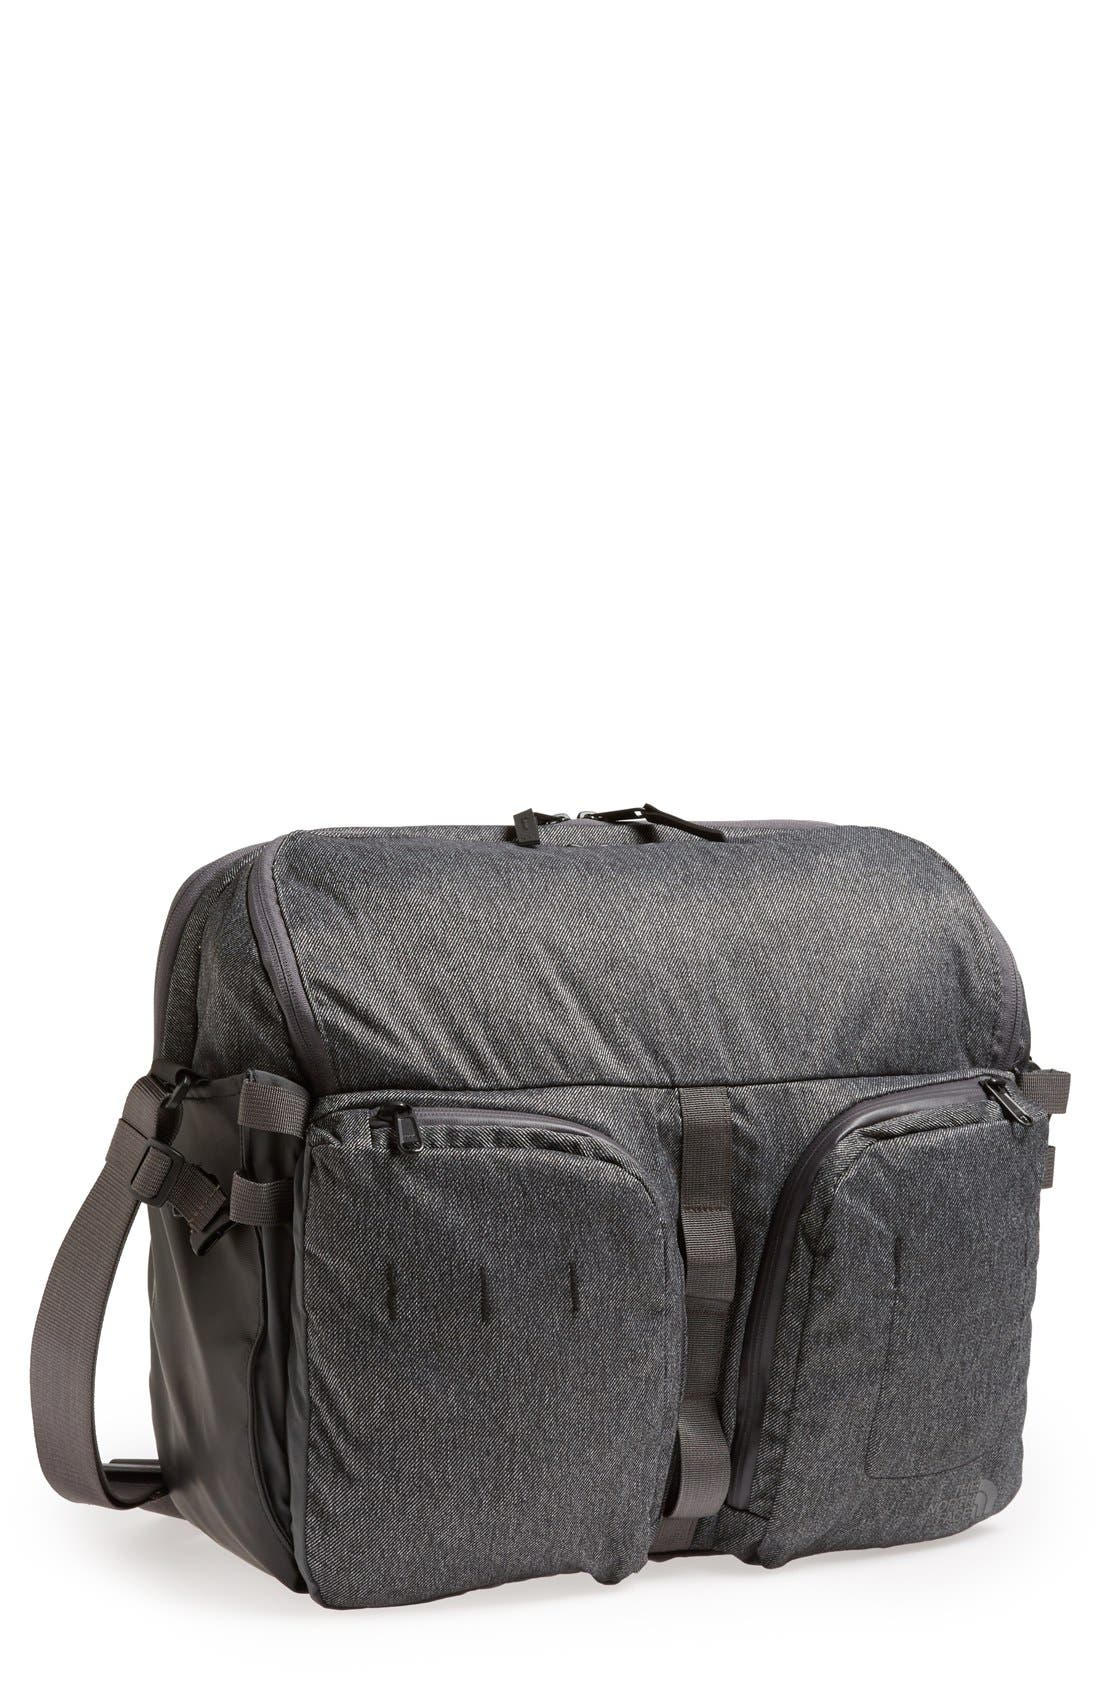 Alternate Image 1 Selected - The North Face 'Westing' Messenger Bag